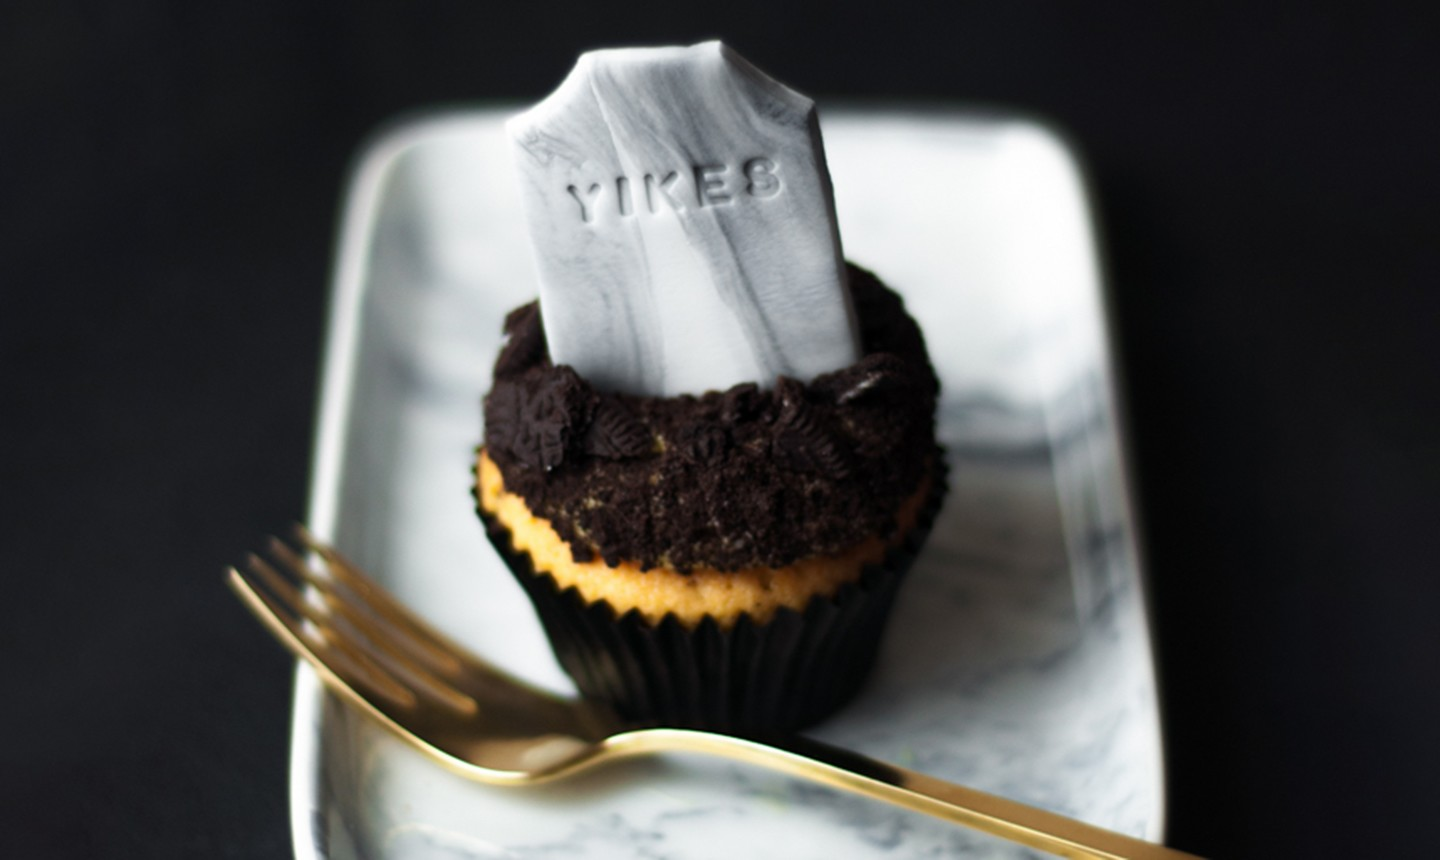 Cupcake with headstone topper